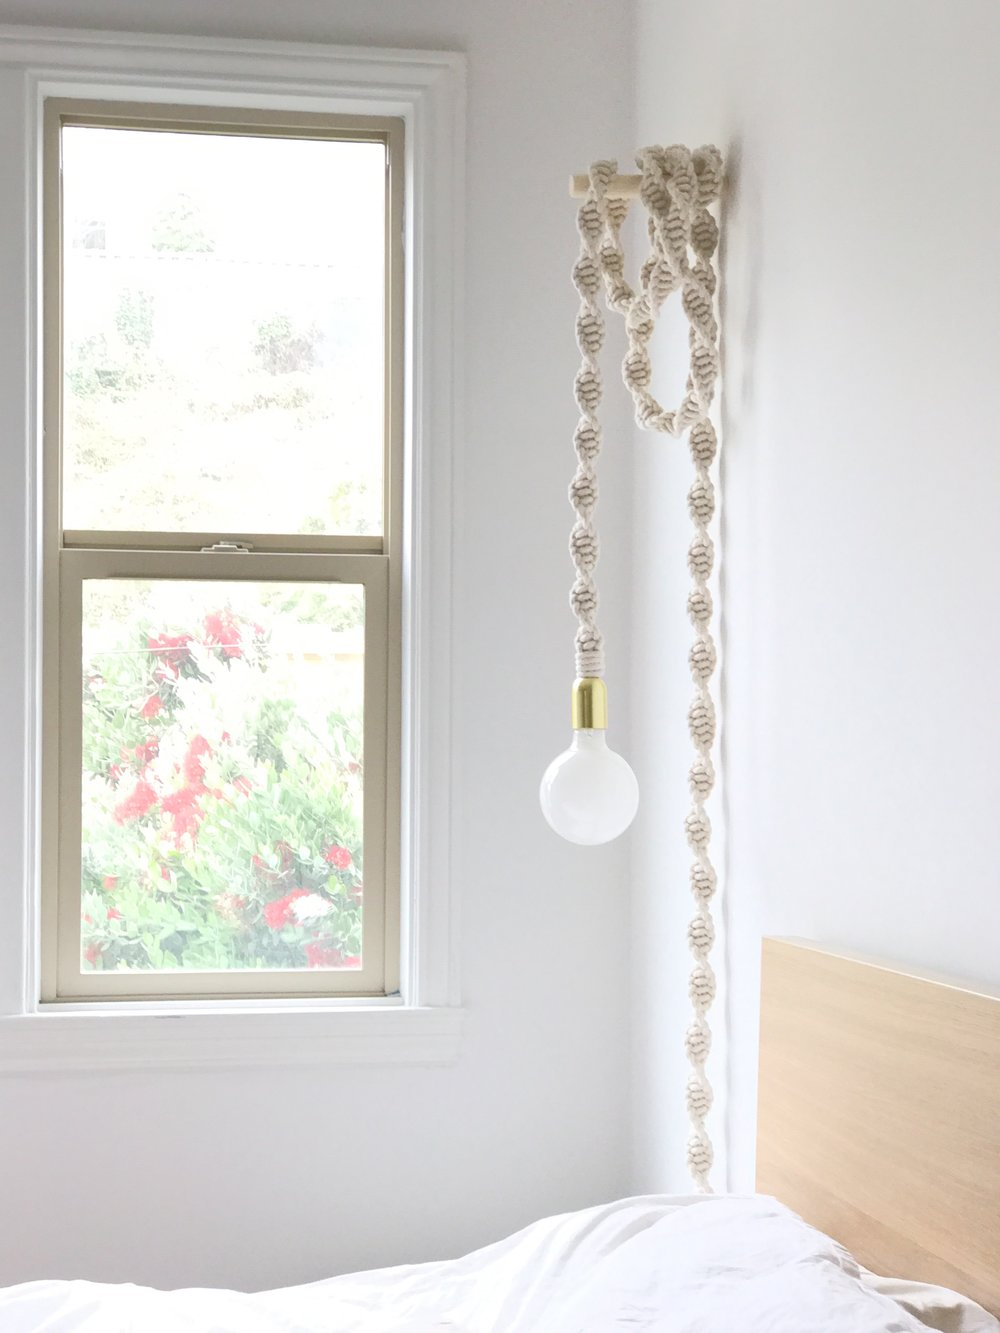 Helix Light installation by Windy Chien http://windychien.com